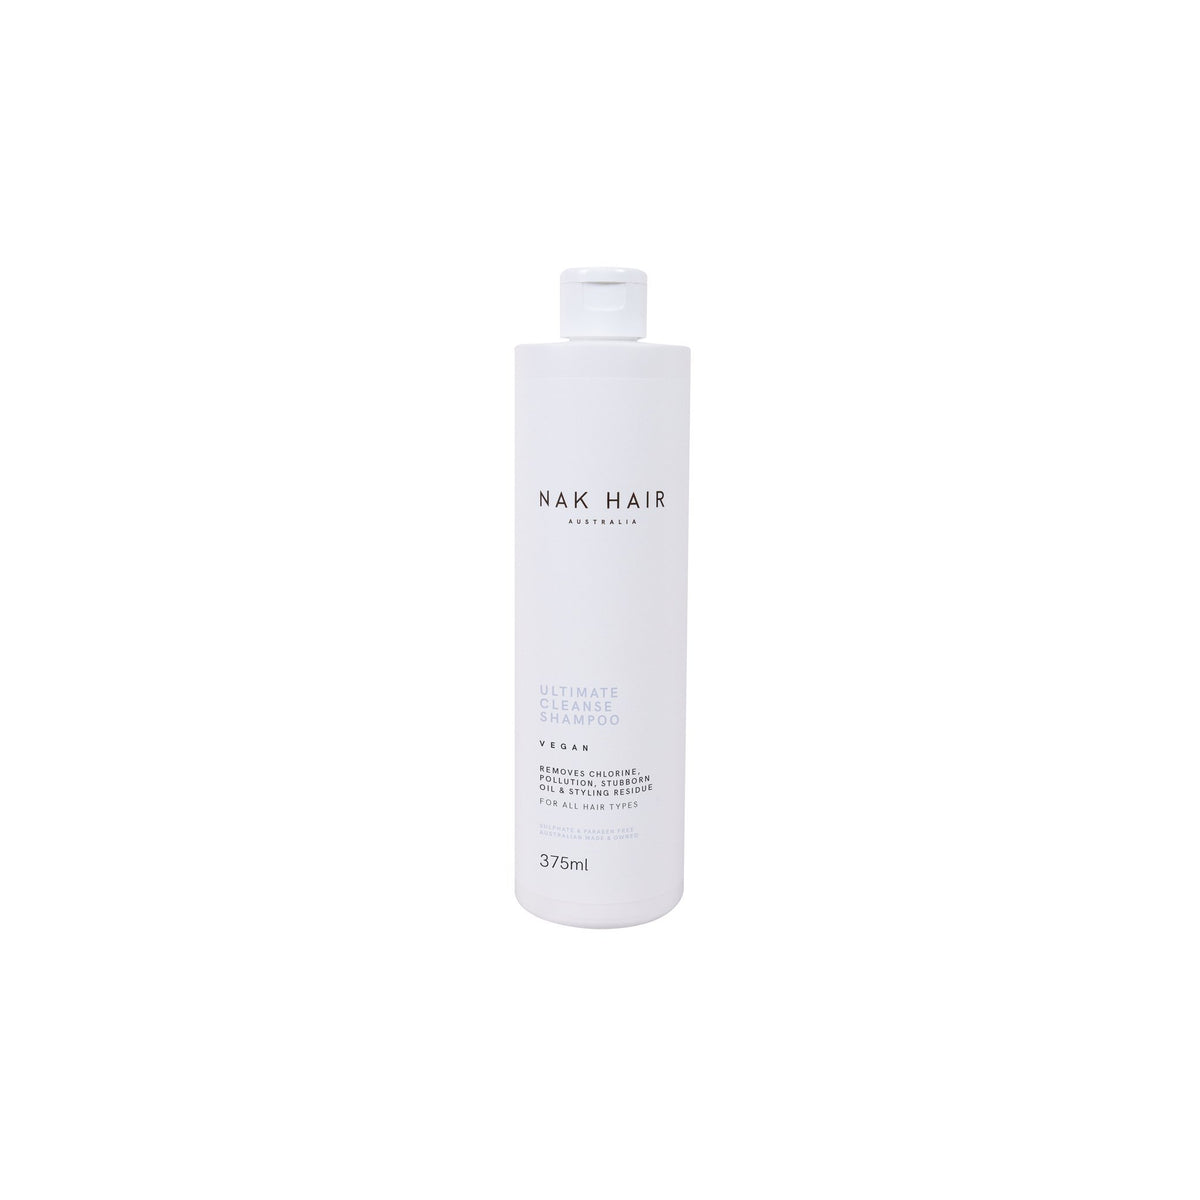 Nak Signatures Ultimate Cleanse Shampoo 375ml